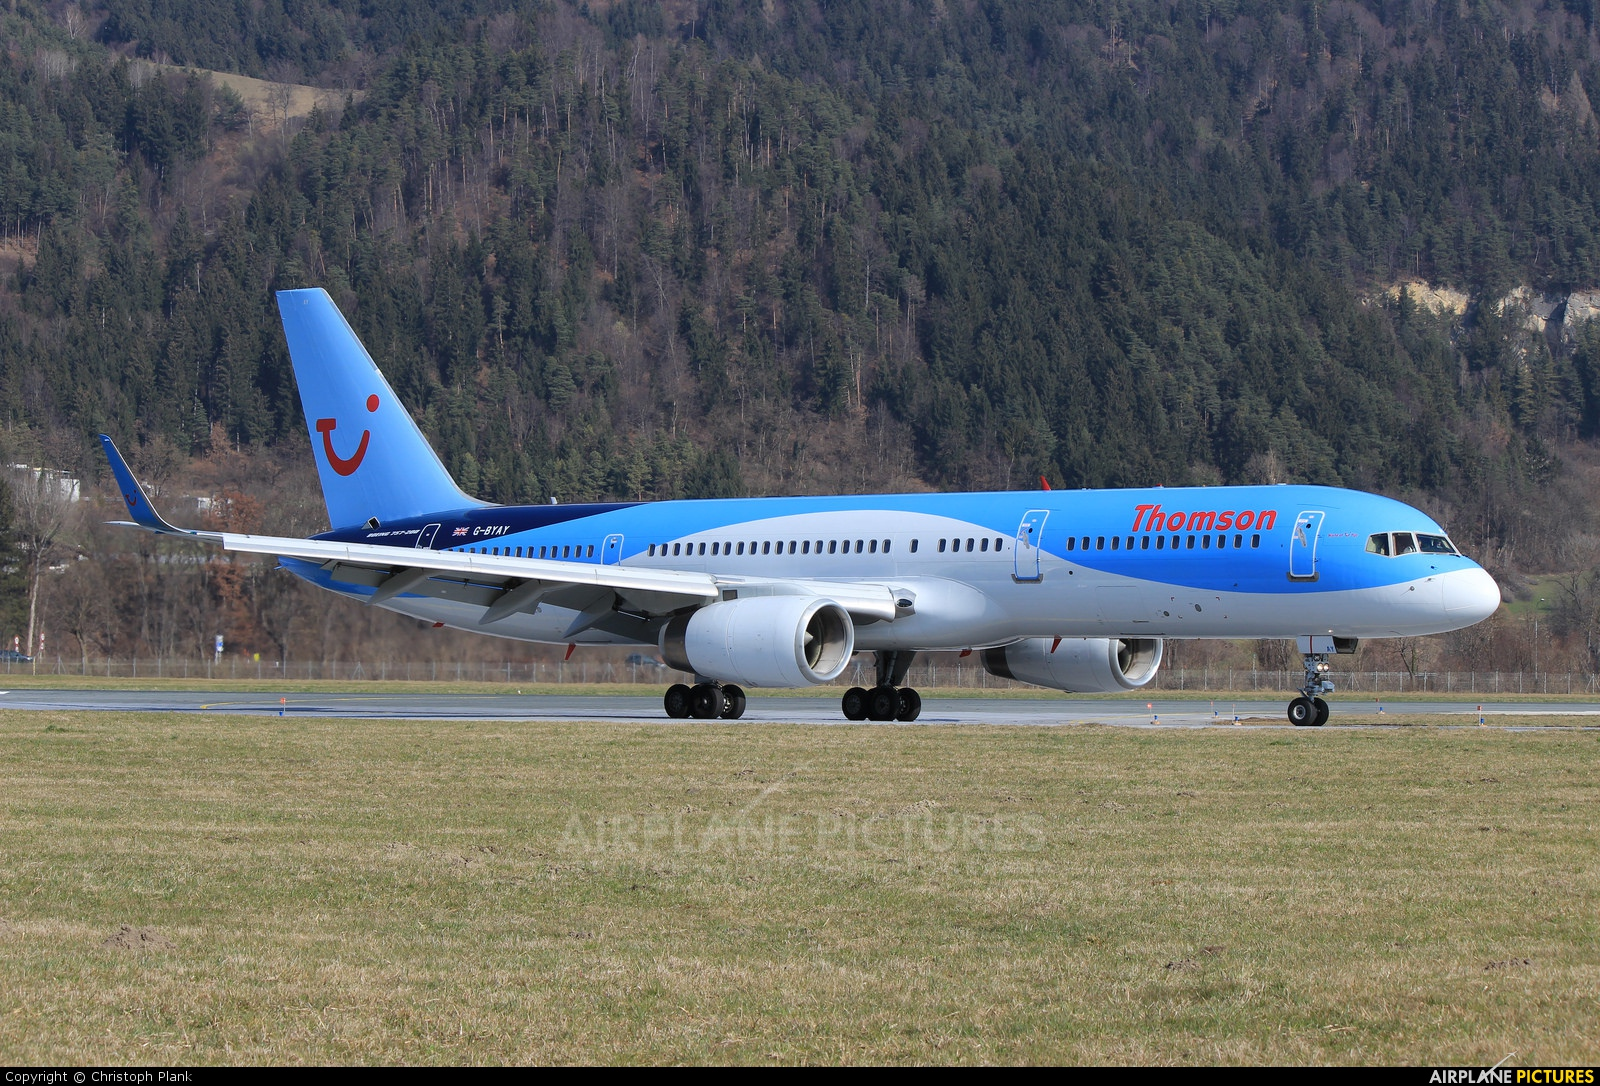 Thomson/Thomsonfly G-BYAY aircraft at Innsbruck